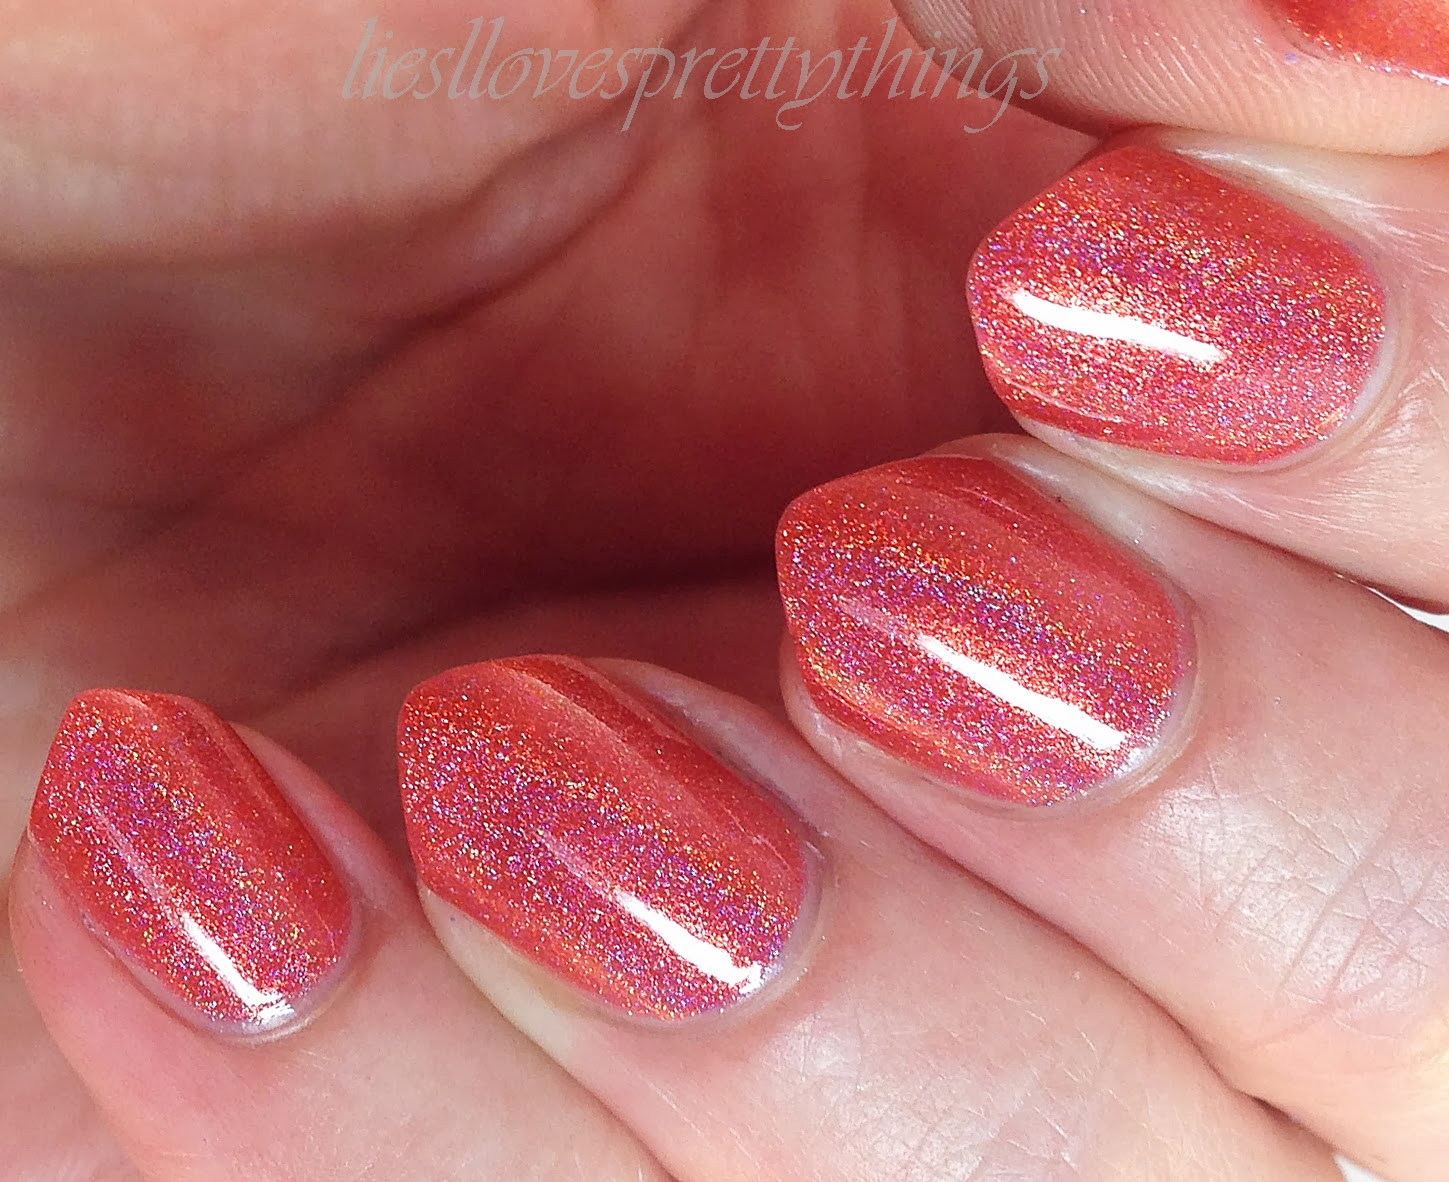 Celestial Cosmetics Sun Kissed swatch and review